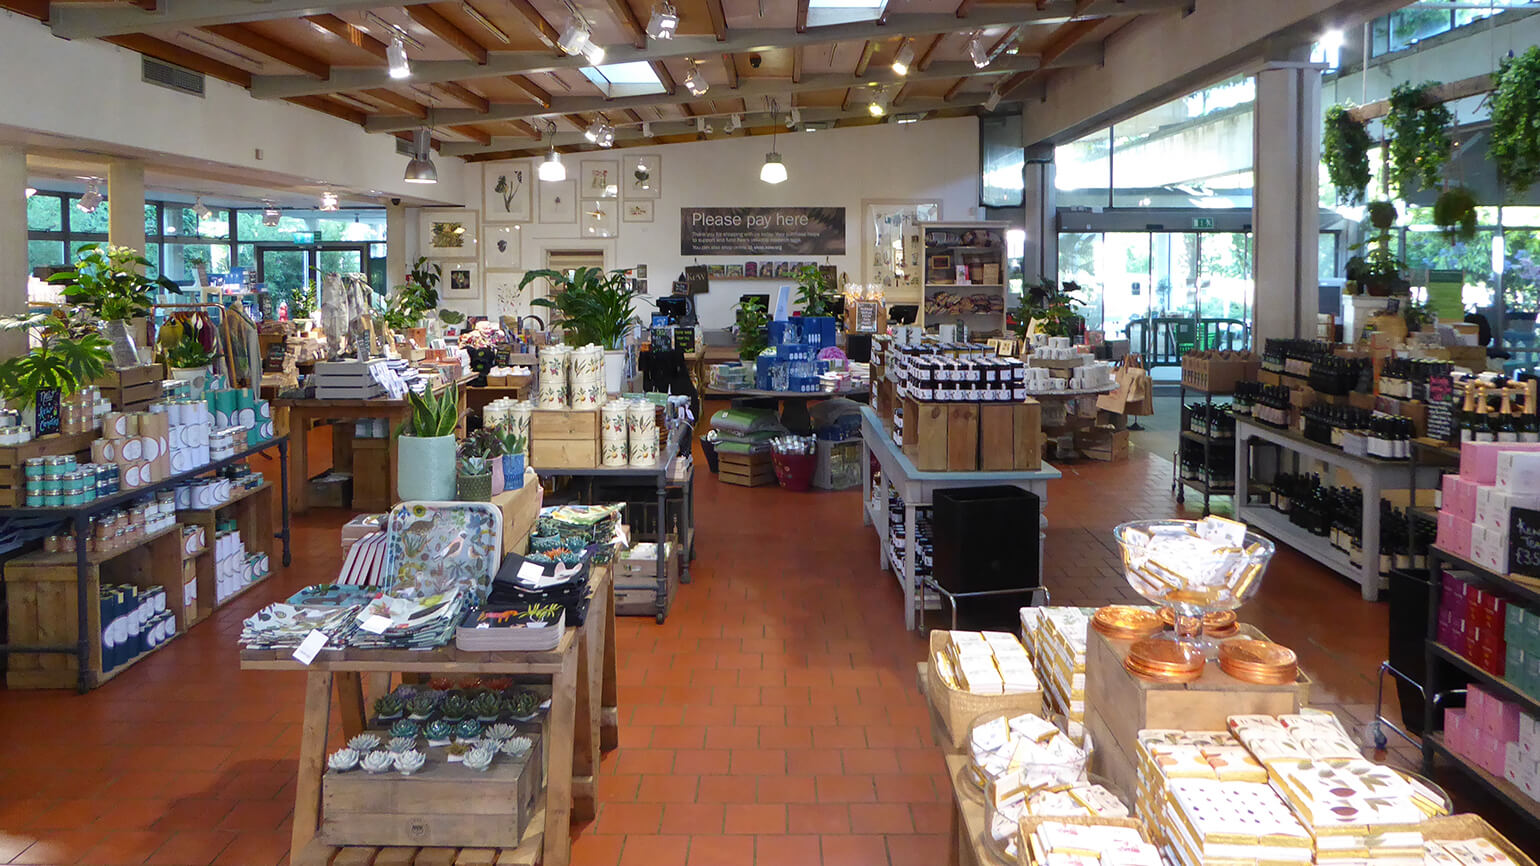 The interior of the Victoria Gate shop